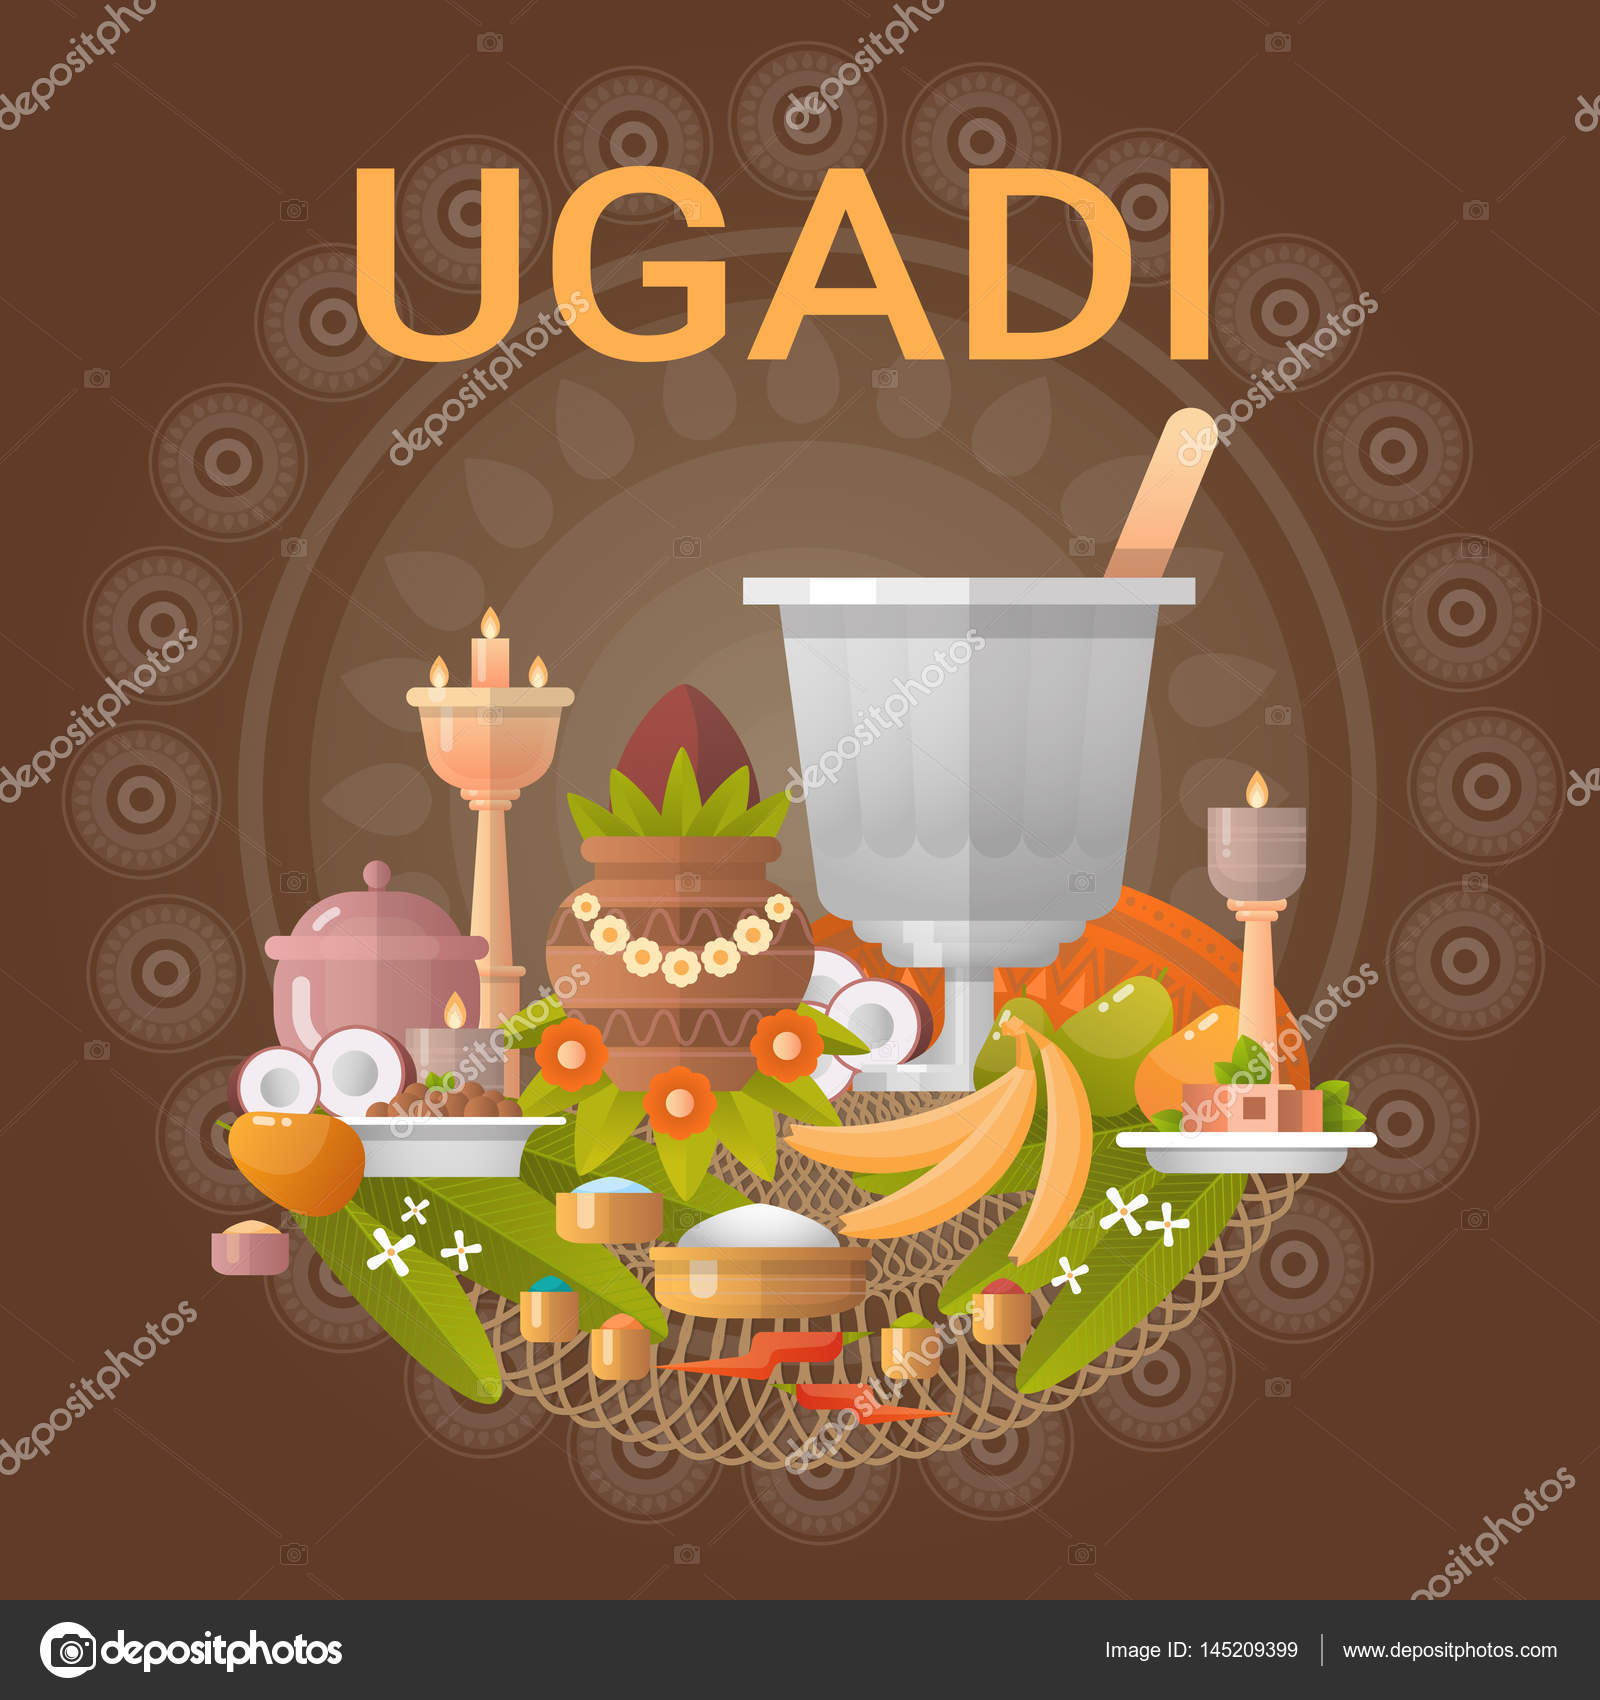 Happy ugadi and gudi padwa hindu new year greeting card holiday happy ugadi and gudi padwa hindu new year greeting card holiday stock vector kristyandbryce Images